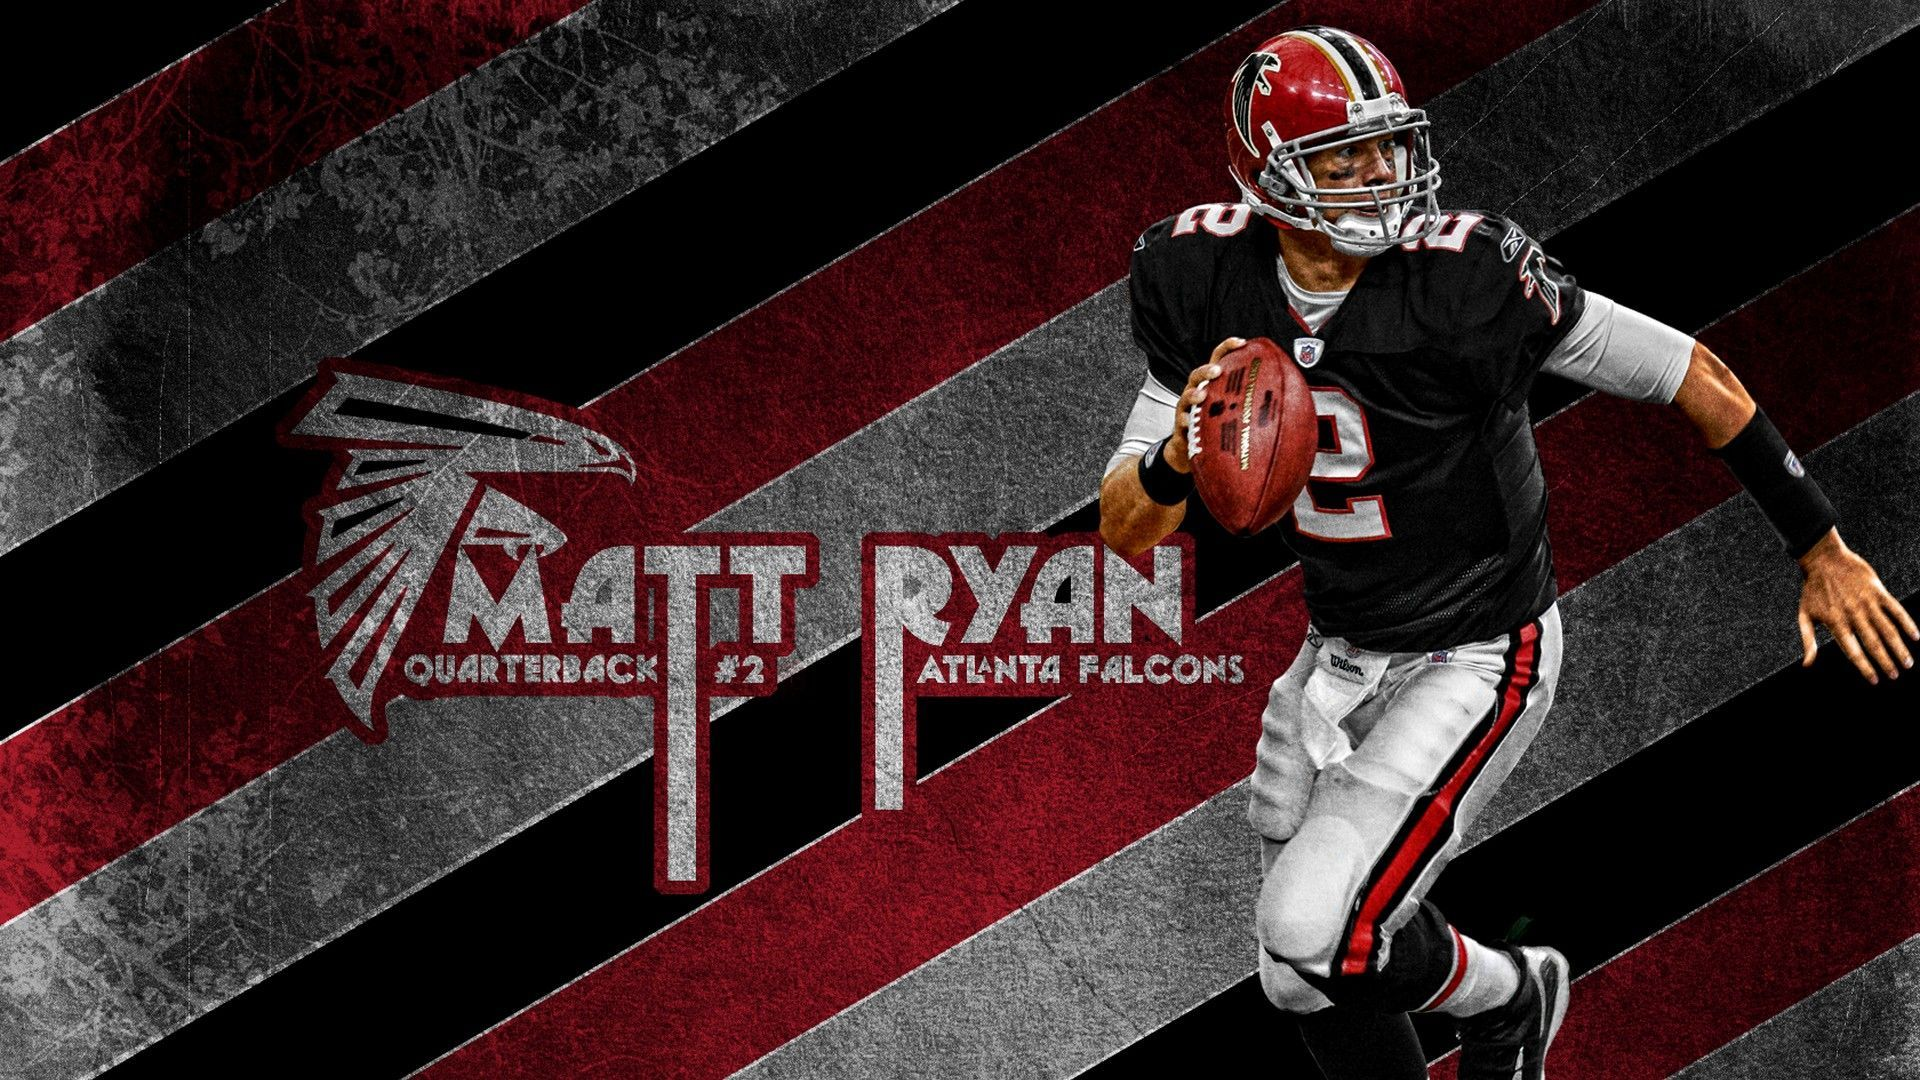 Falcons For Pc Wallpaper 2020 Nfl Football Wallpapers Trend In 2020 Nfl Football Wallpaper Atlanta Falcons Wallpaper Football Wallpaper